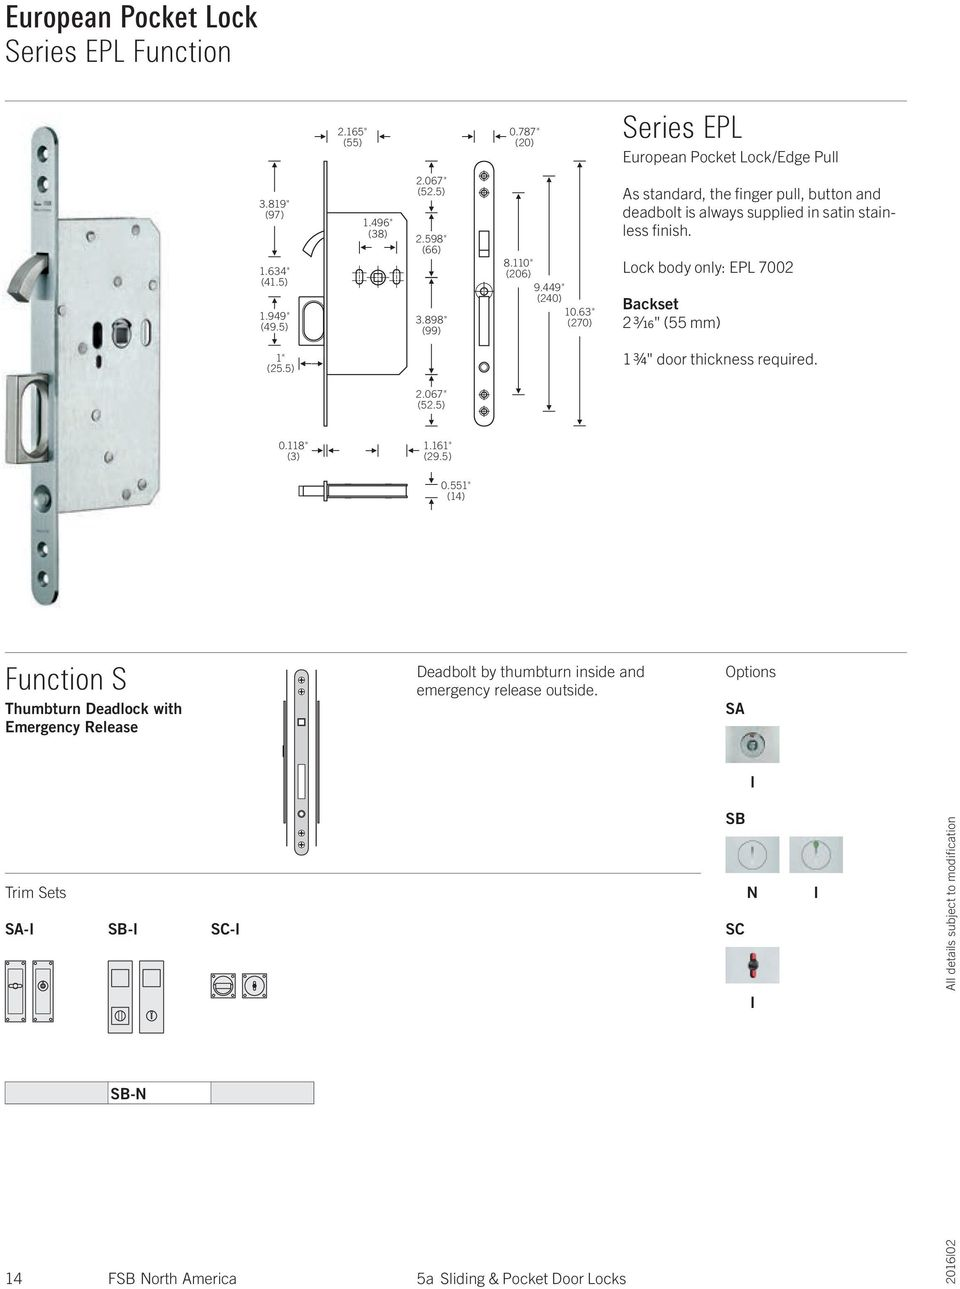 "63"" (270) As standard, the finger pull, button and deadbolt is always supplied in satin stainless finish."